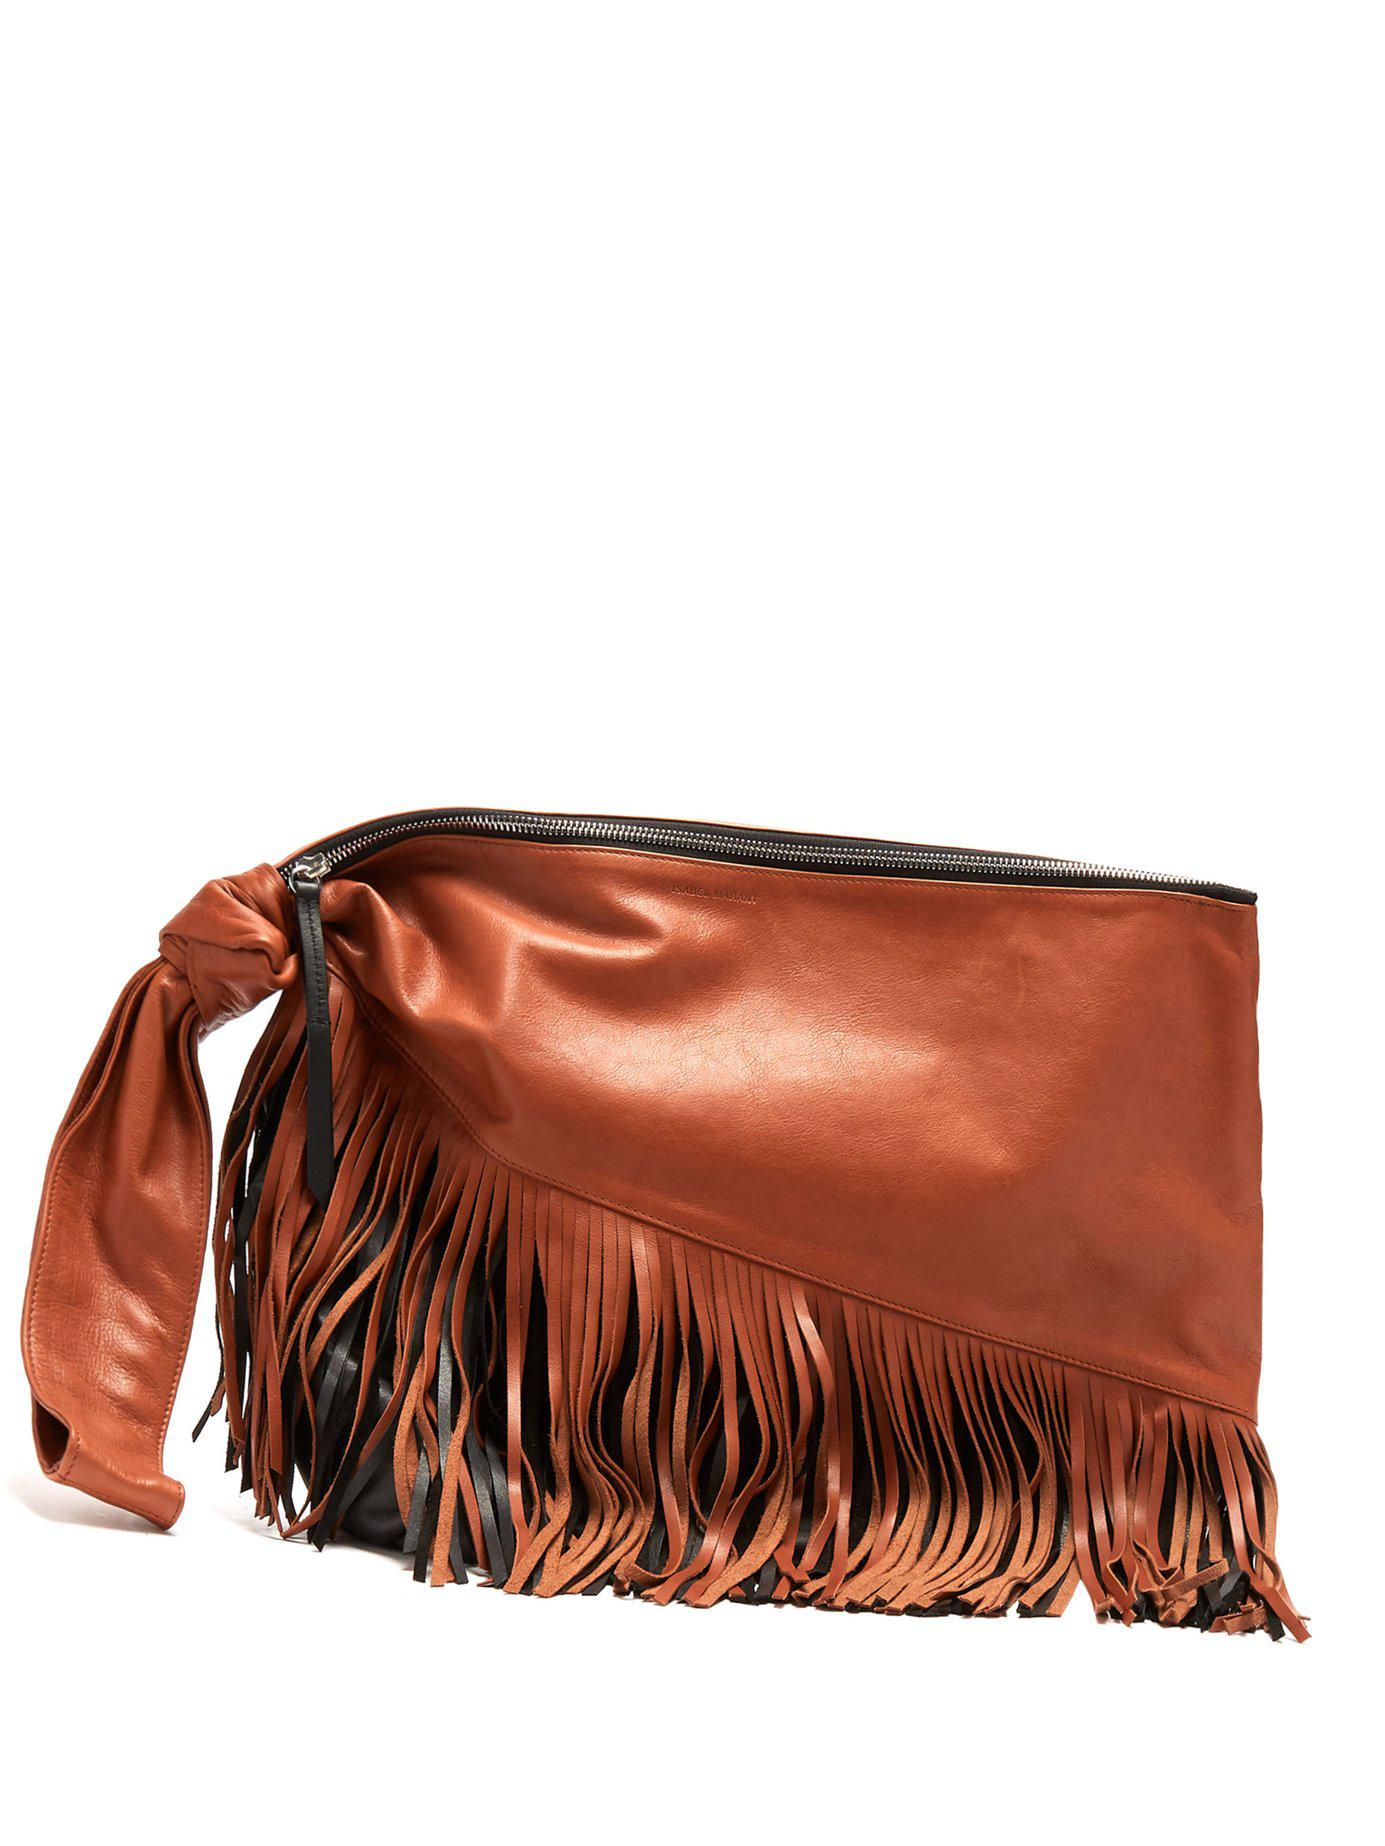 8392dfa05a3 Lyst - Isabel Marant Farwo Tasselled Leather Clutch in Red